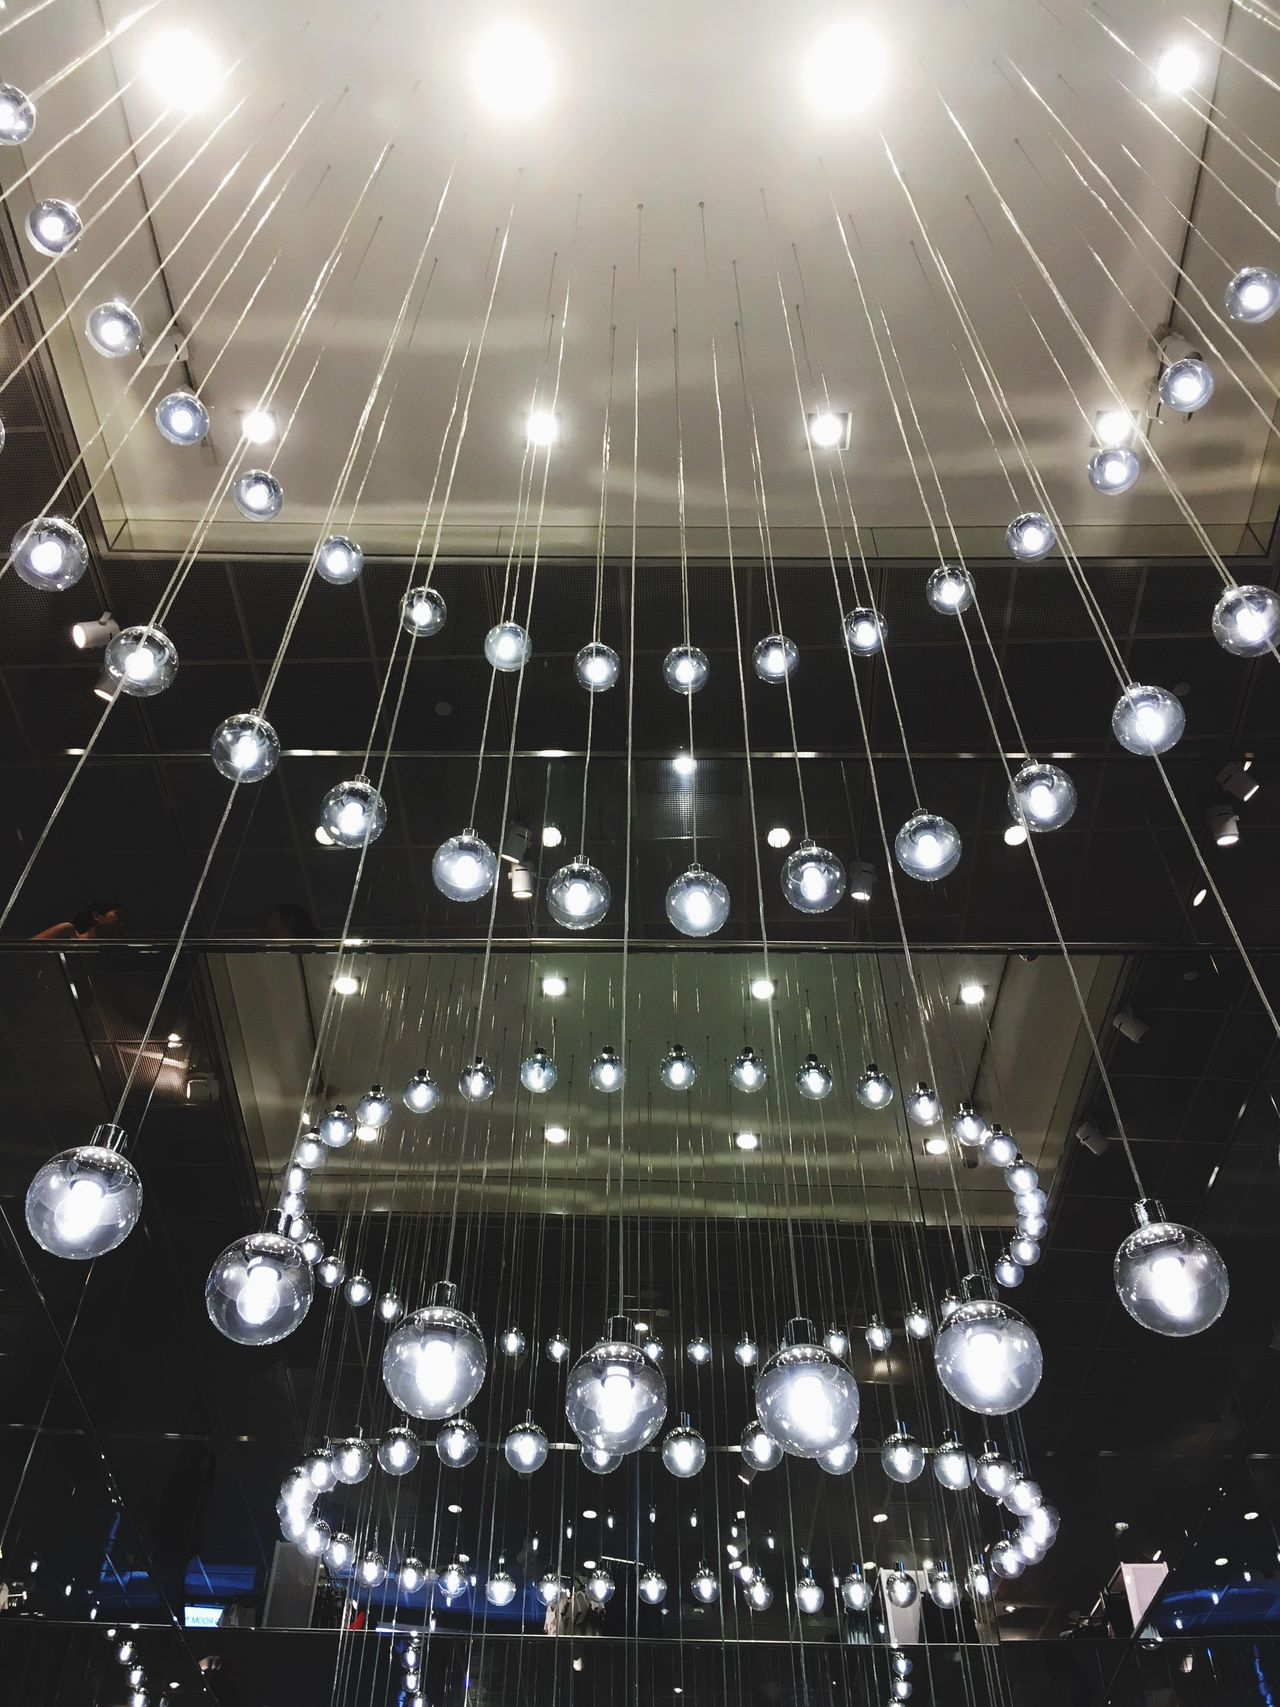 Ceiling Illuminated Modern Linear IPhone Photography IPhone SE Smartphone Photography Light Bulb Modern Chandelier